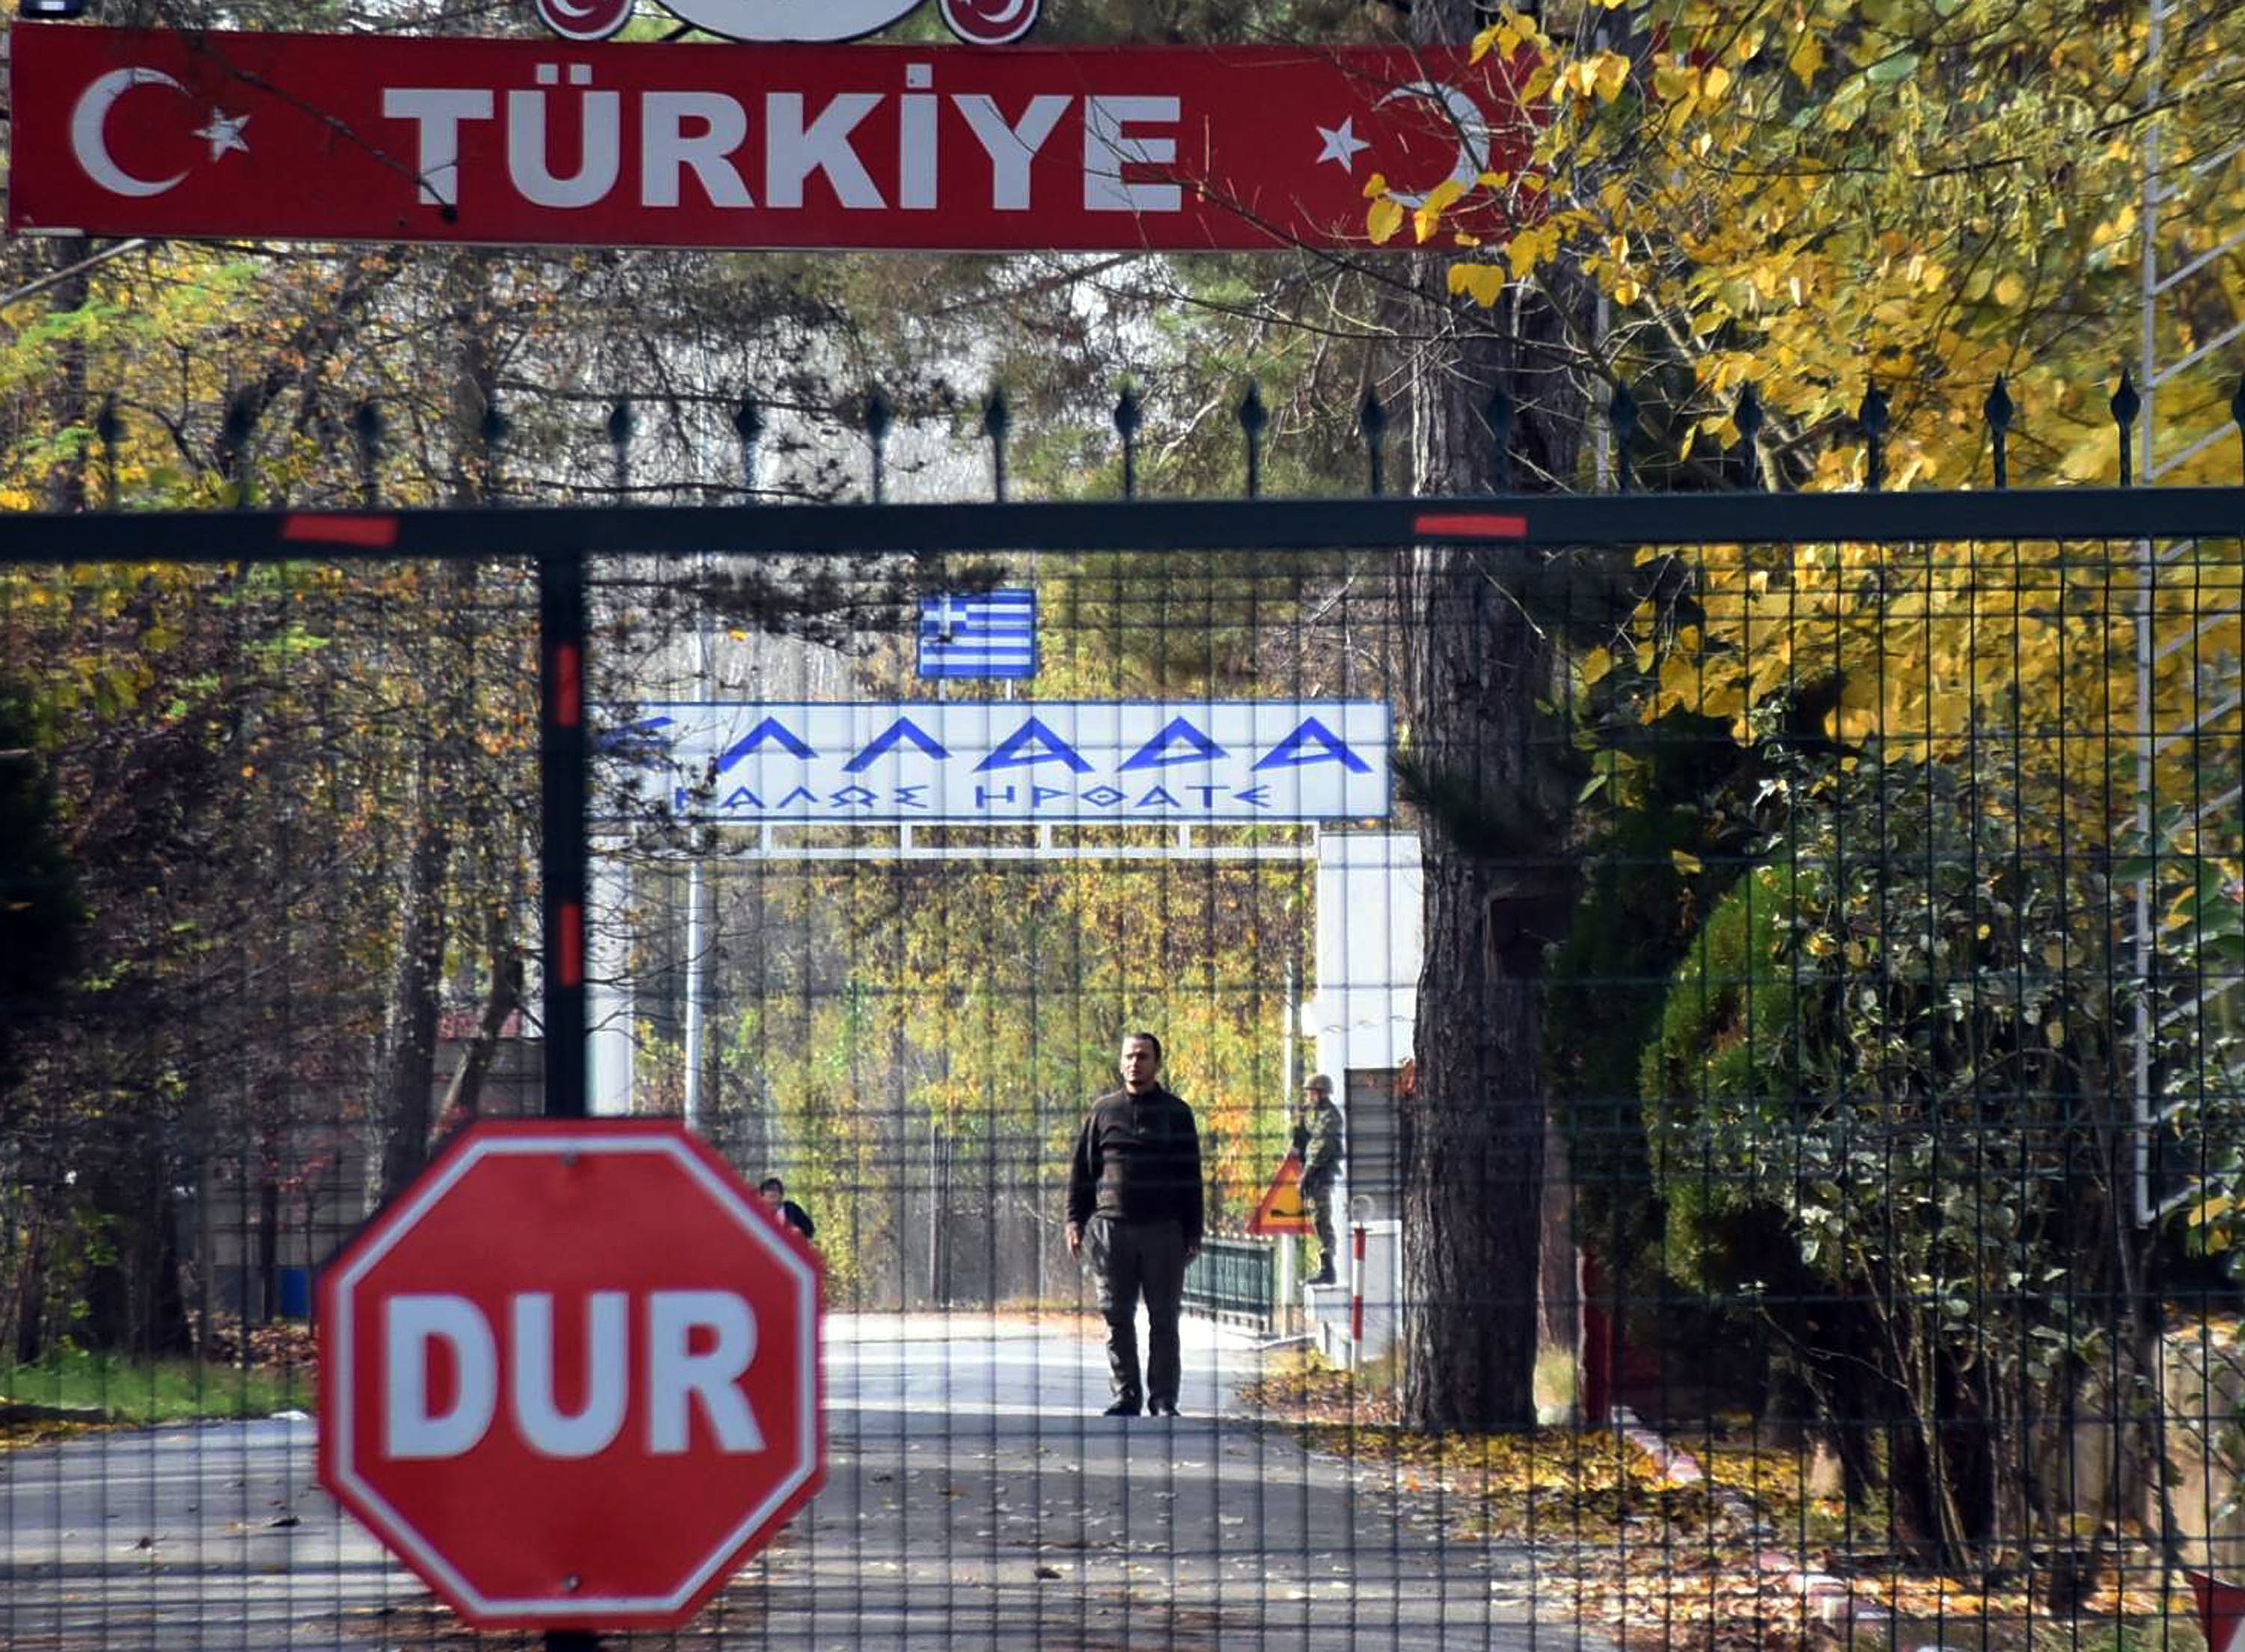 An man who is identified by Turkish news reports as a U.S. citizen who has been deported by Turkey and is now stuck in the heavily militarized no-man's land between Greece and Turkey, after Greece refused to take him in, near Pazarkule border gate, Edirne, Turkey, Monday Nov. 11, 2019.